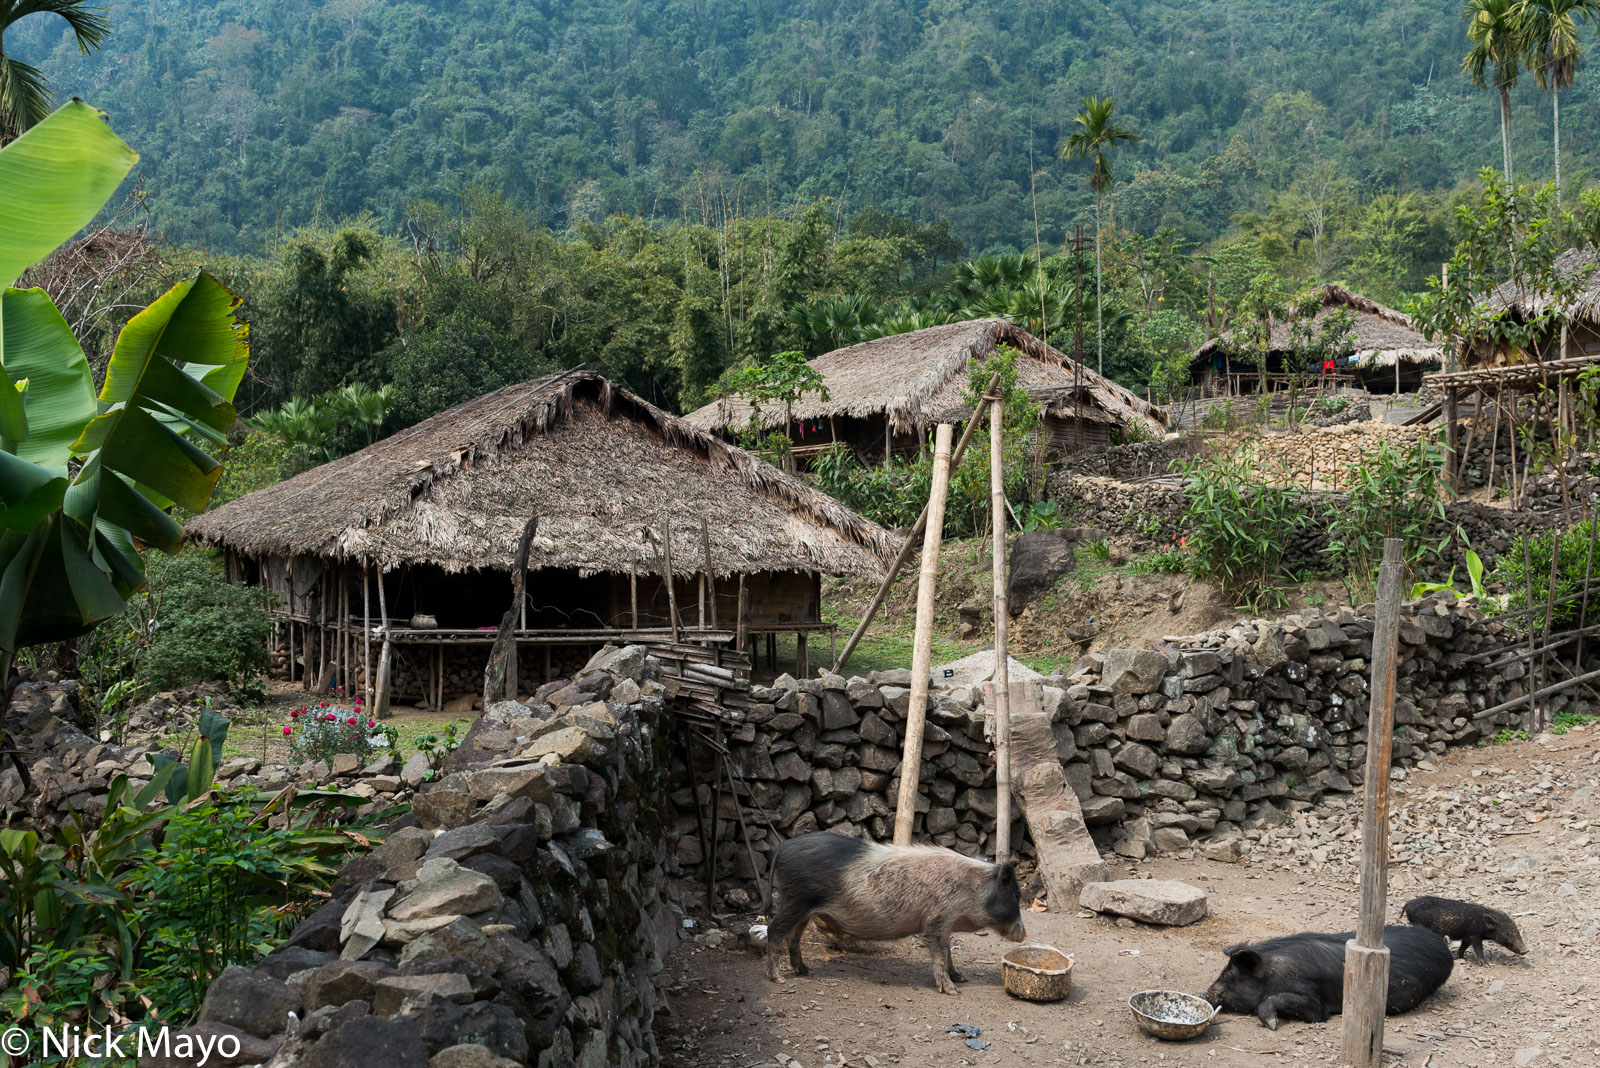 Arunachal Pradesh, India, Pig, Thatch, Village, photo